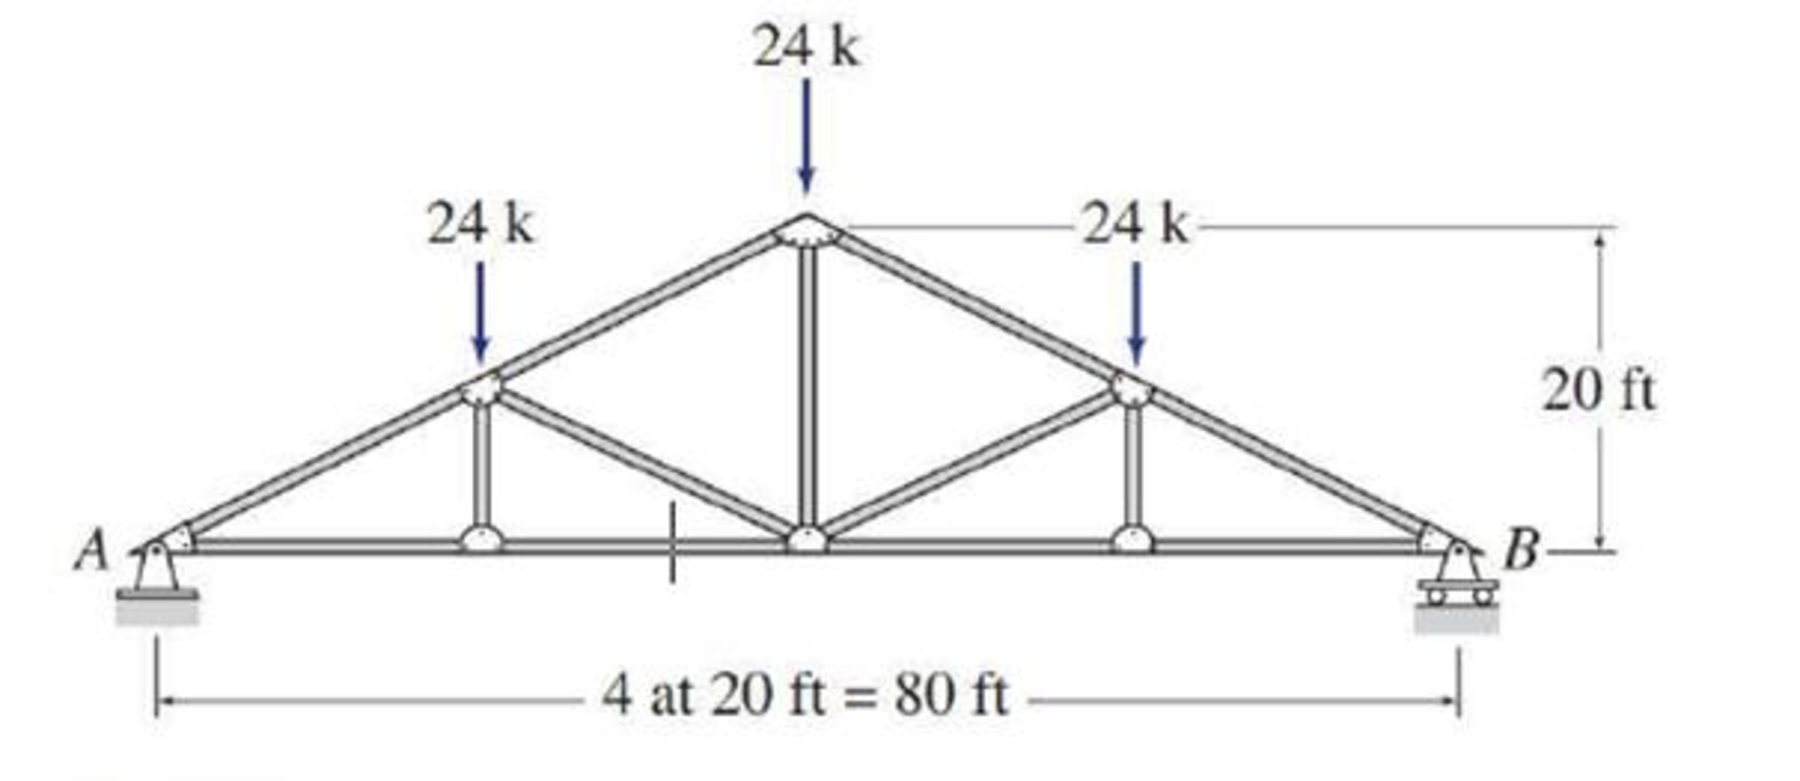 Chapter 3, Problem 16P, Determine the reactions at the supports for the structures shown. FIG.P3.16